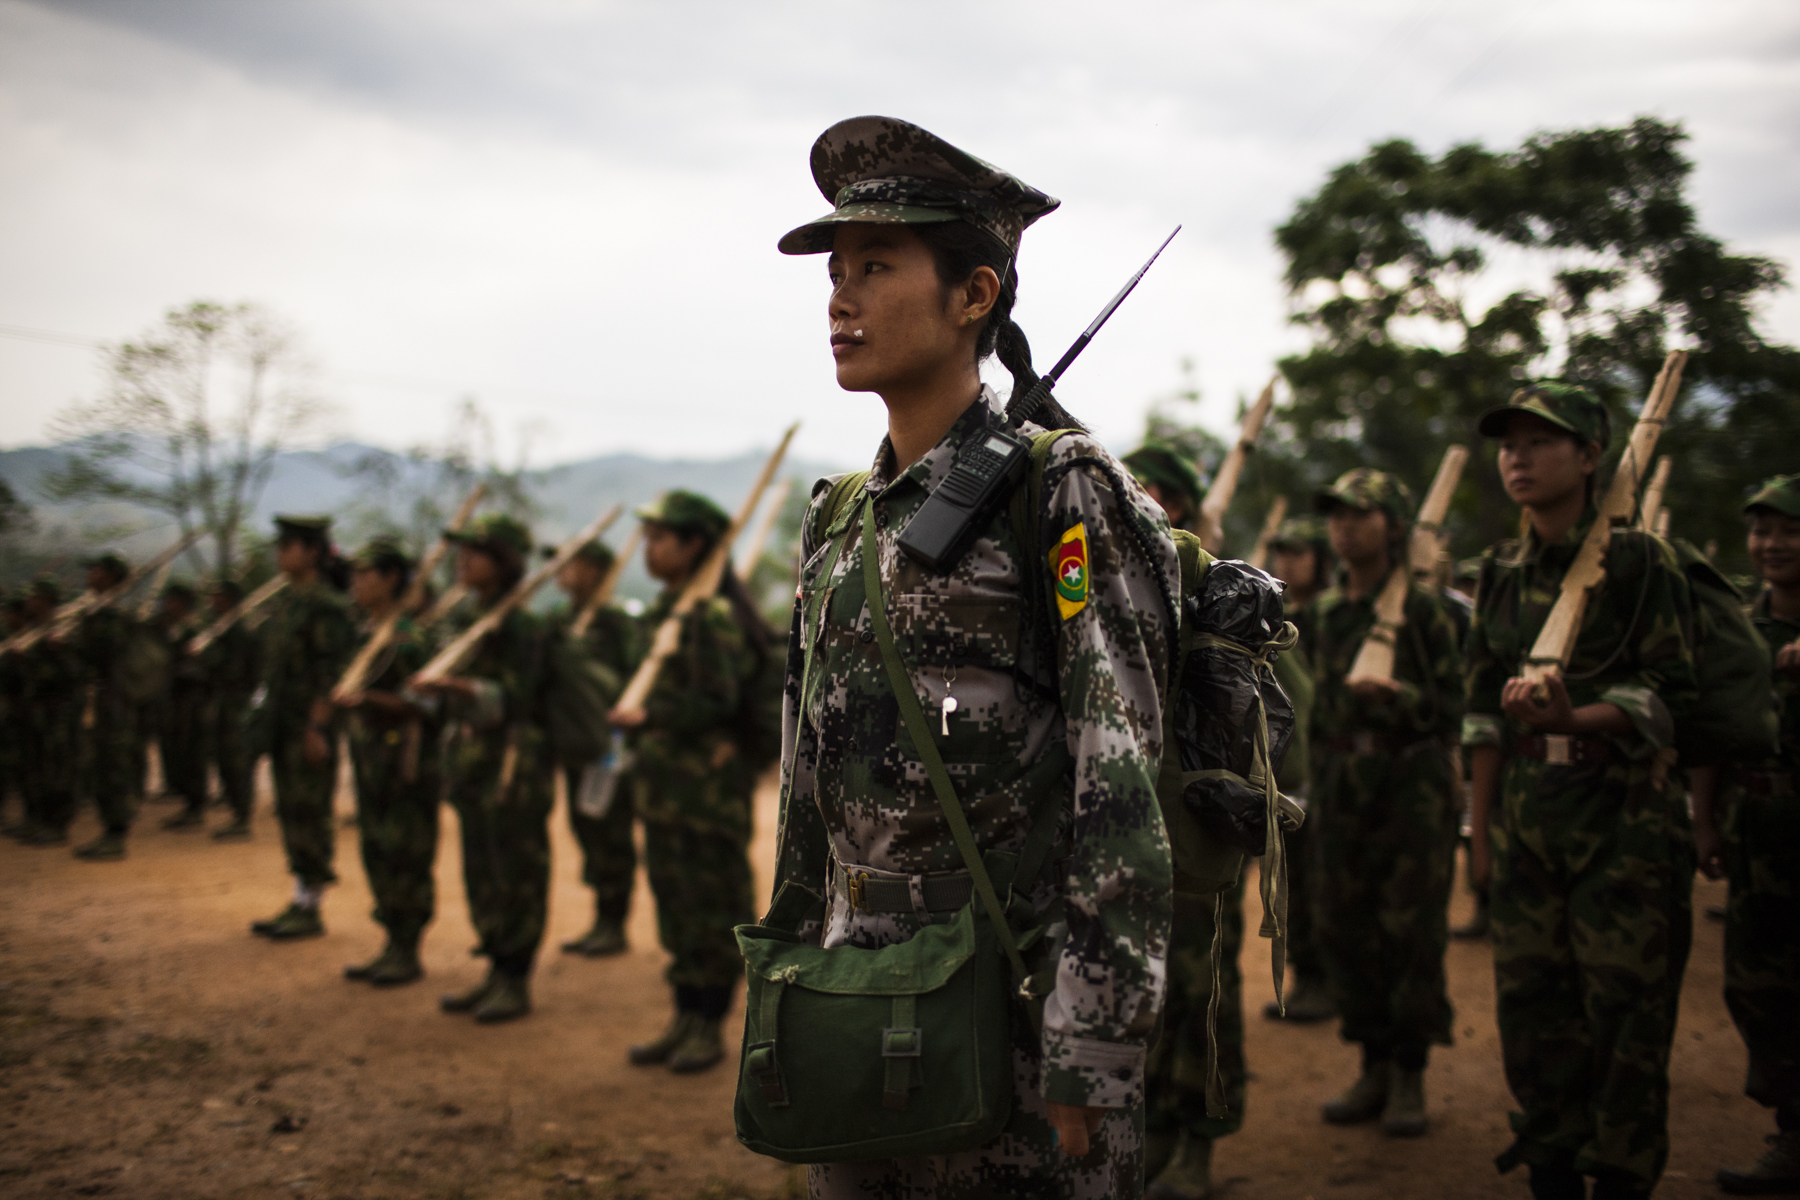 A member of the KIA's Women's Armed Forces helps to lead basic military training at the army base outside of Laiza, Kachin State, Myanmar, May 13, 2013. According to UNHCR there a over 100,000 IDPs in Kachin State and northern Shan State.